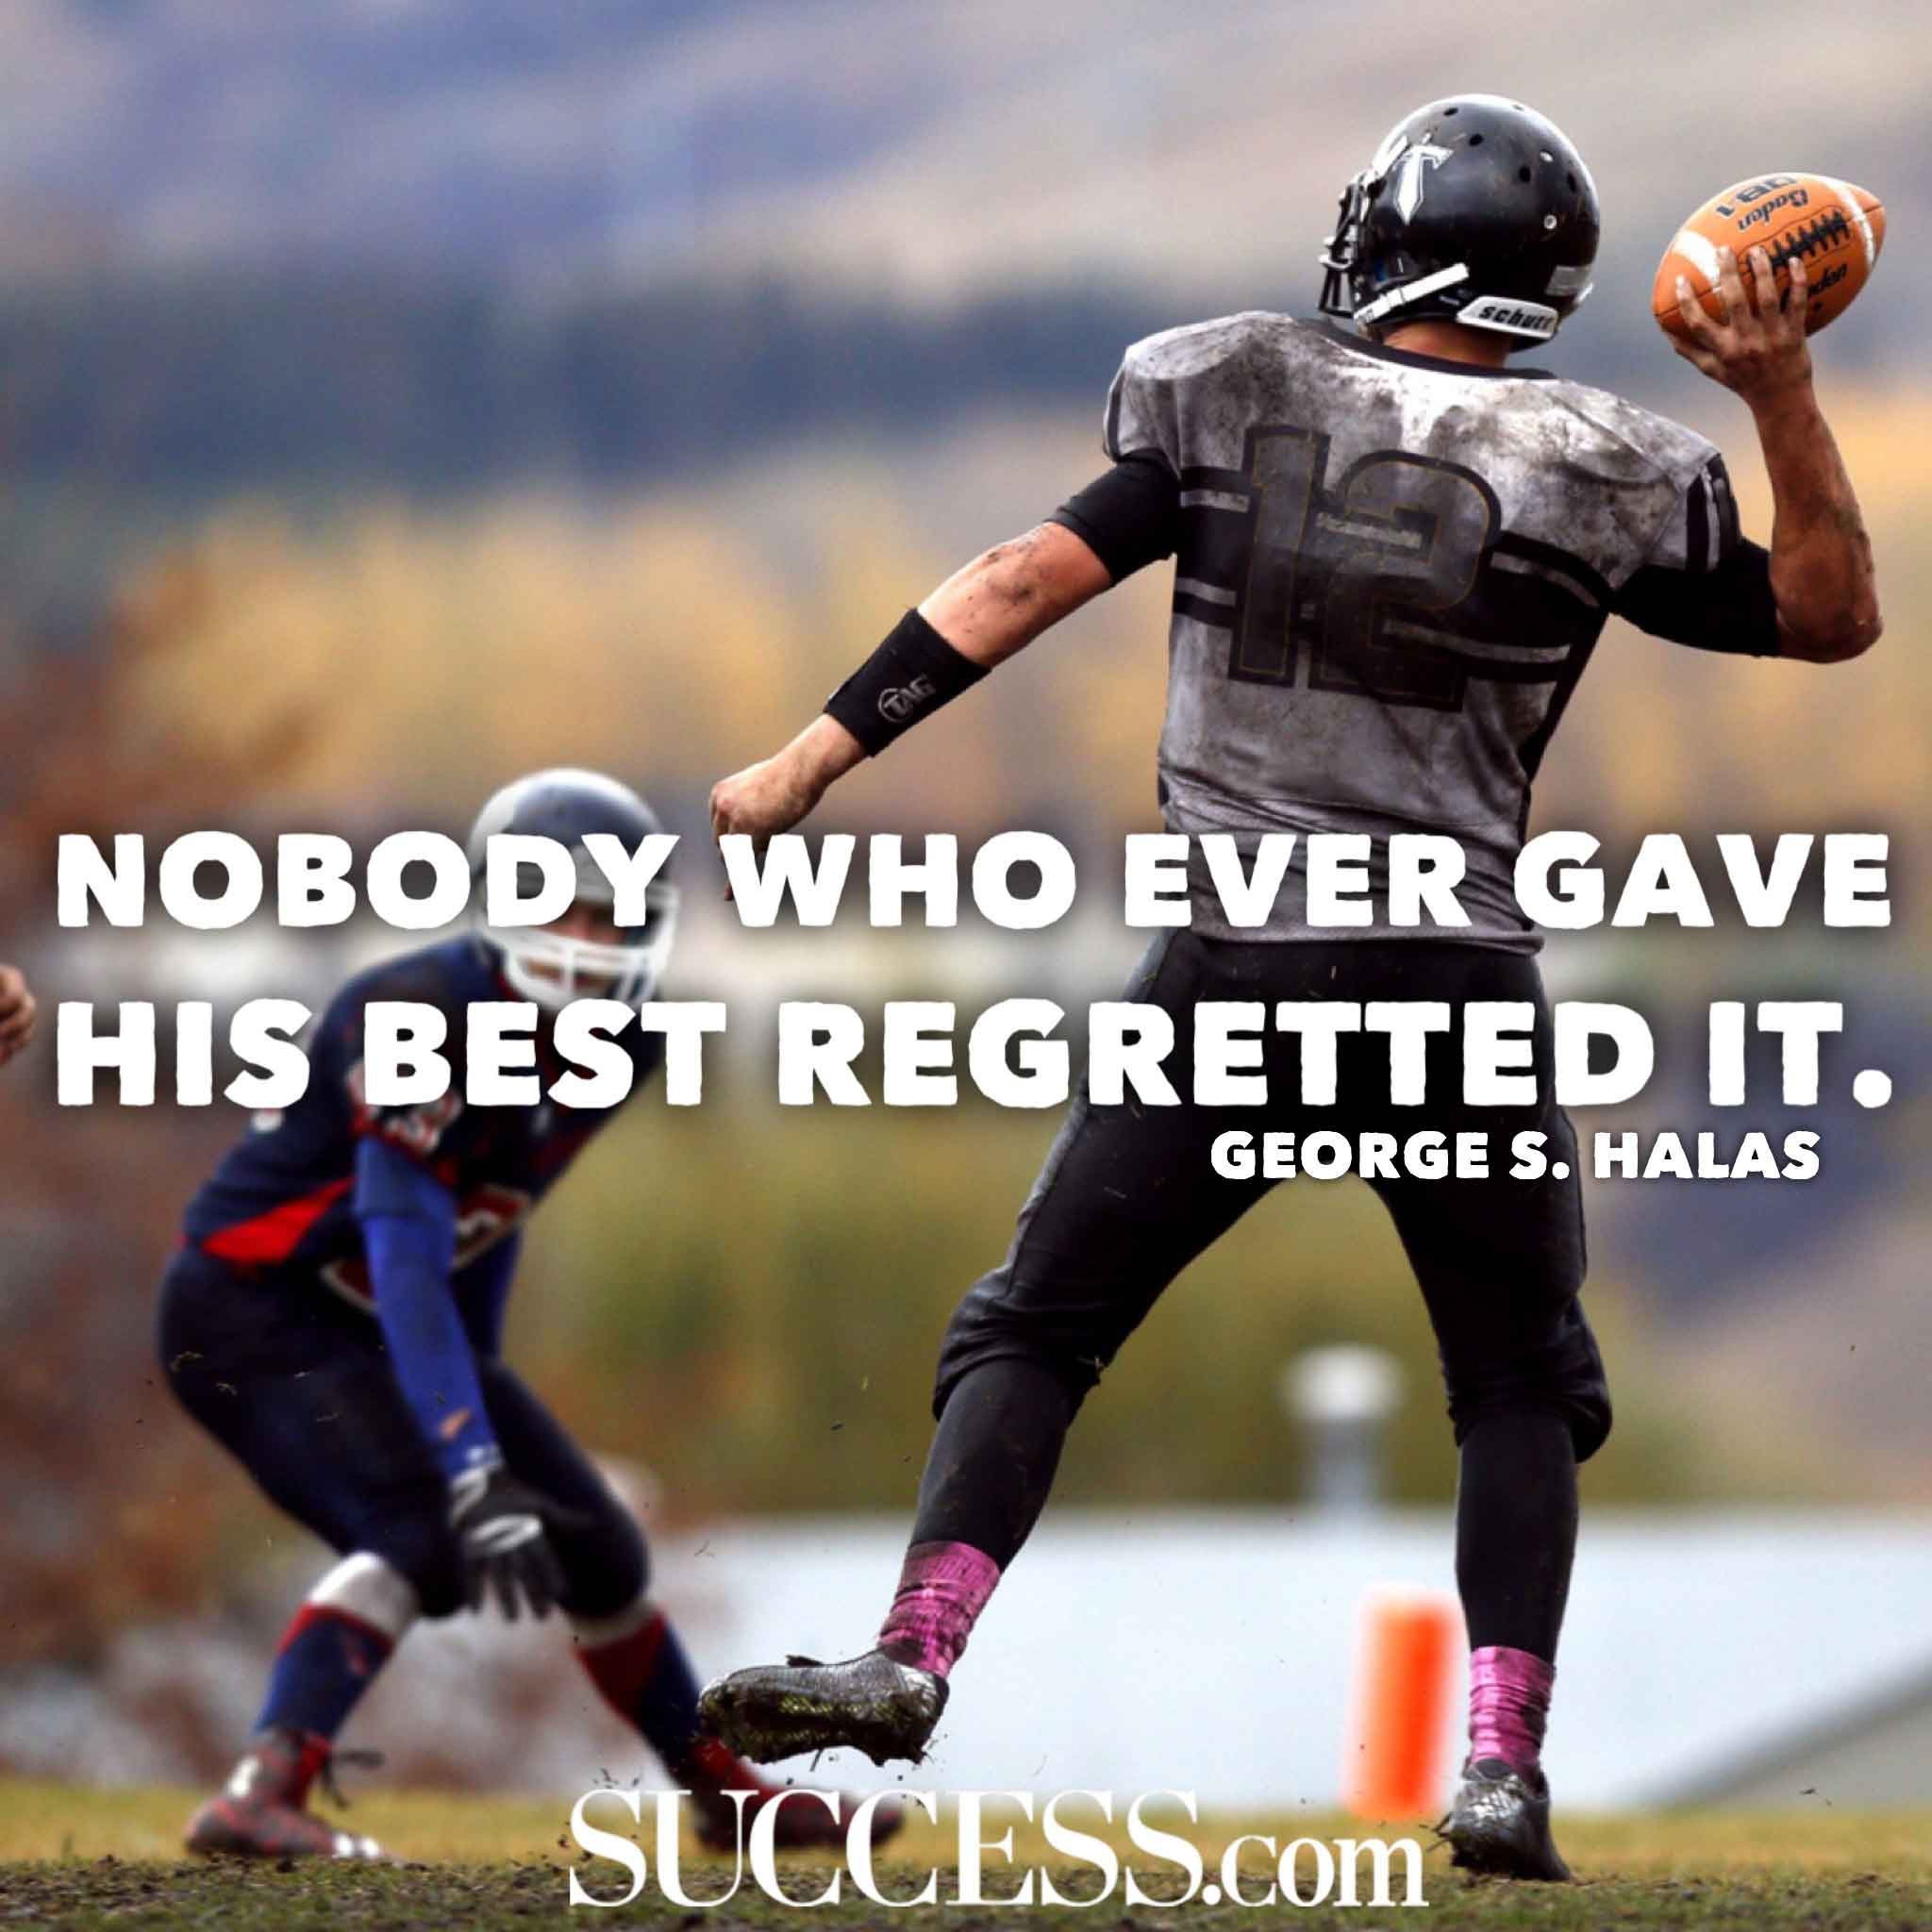 Best Football Quotes: 20 Motivational Quotes By The Most Inspiring NFL Coaches